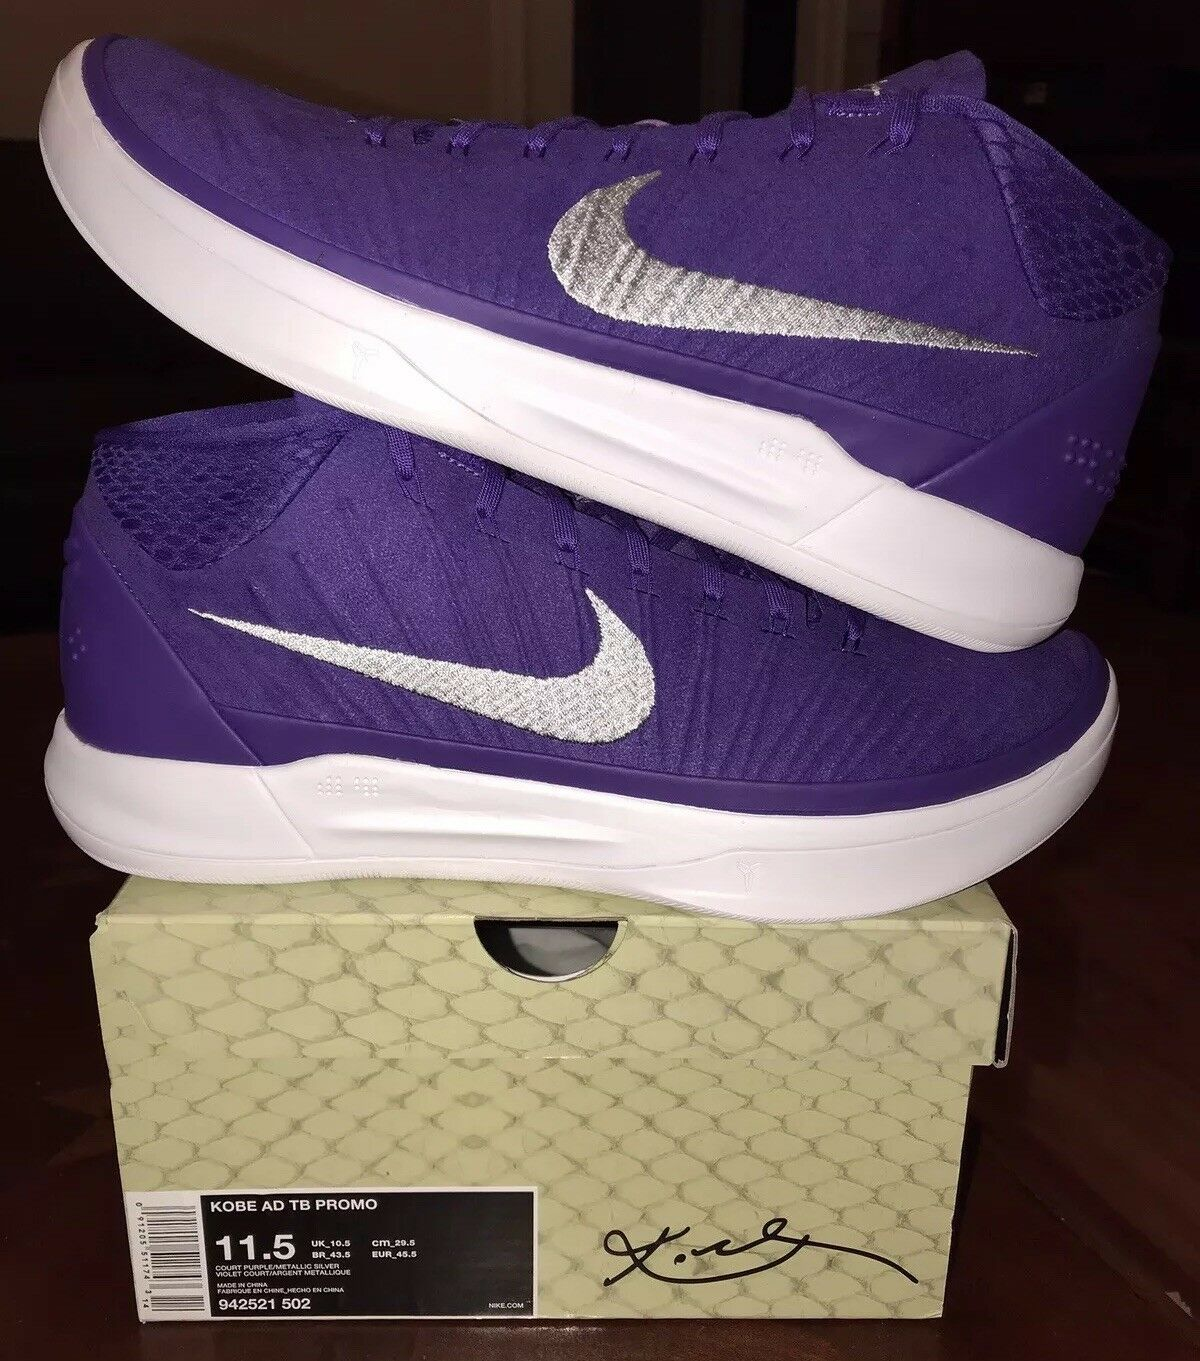 low priced 47457 5d737 Nike Kobe AD AD AD TB Promo Court Purple 11.5 11 XI Mid Basketball shoes 1